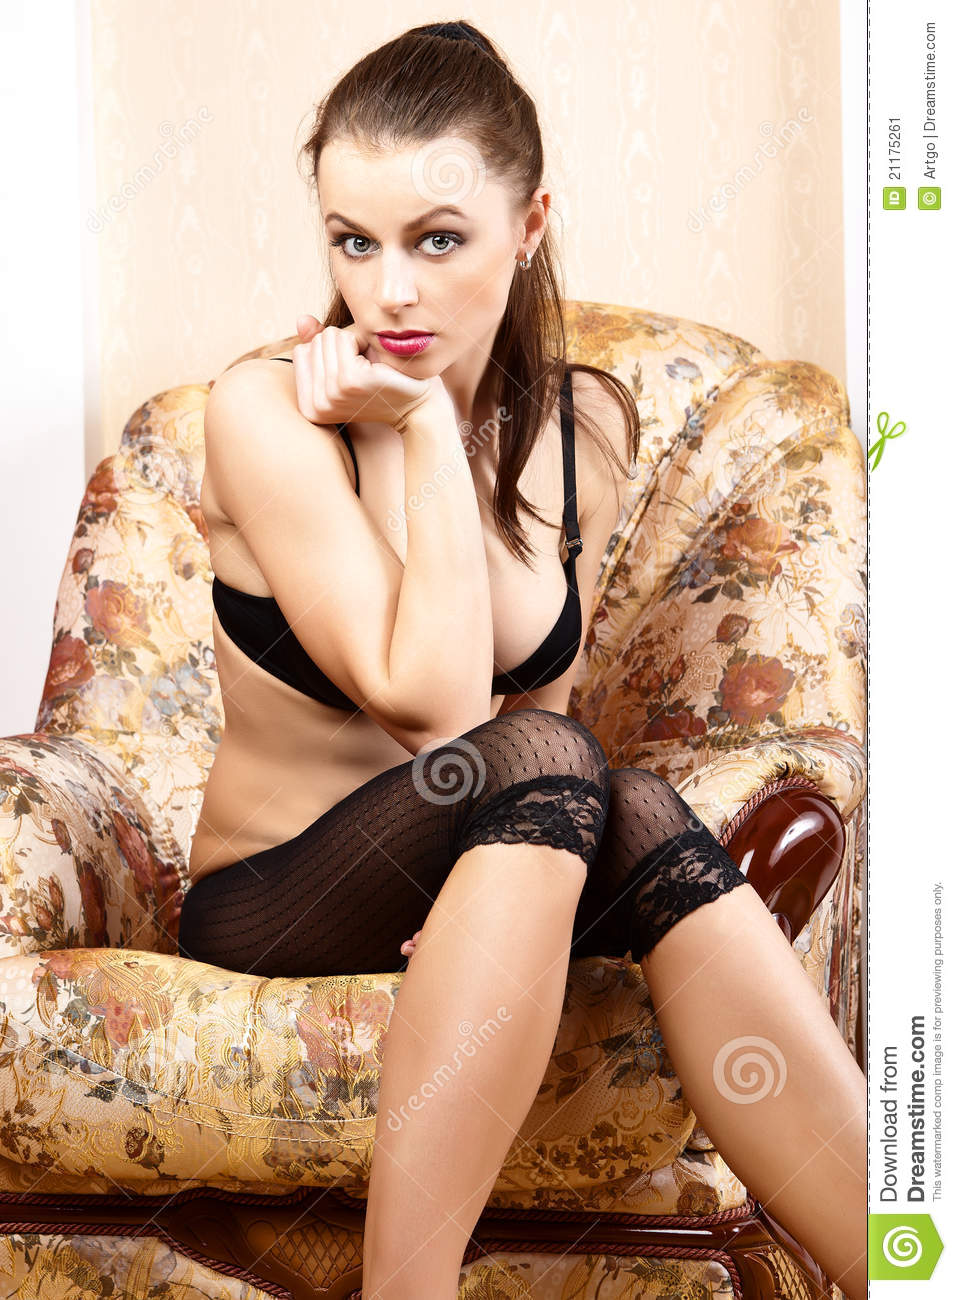 Hot girl sitting in chair your place